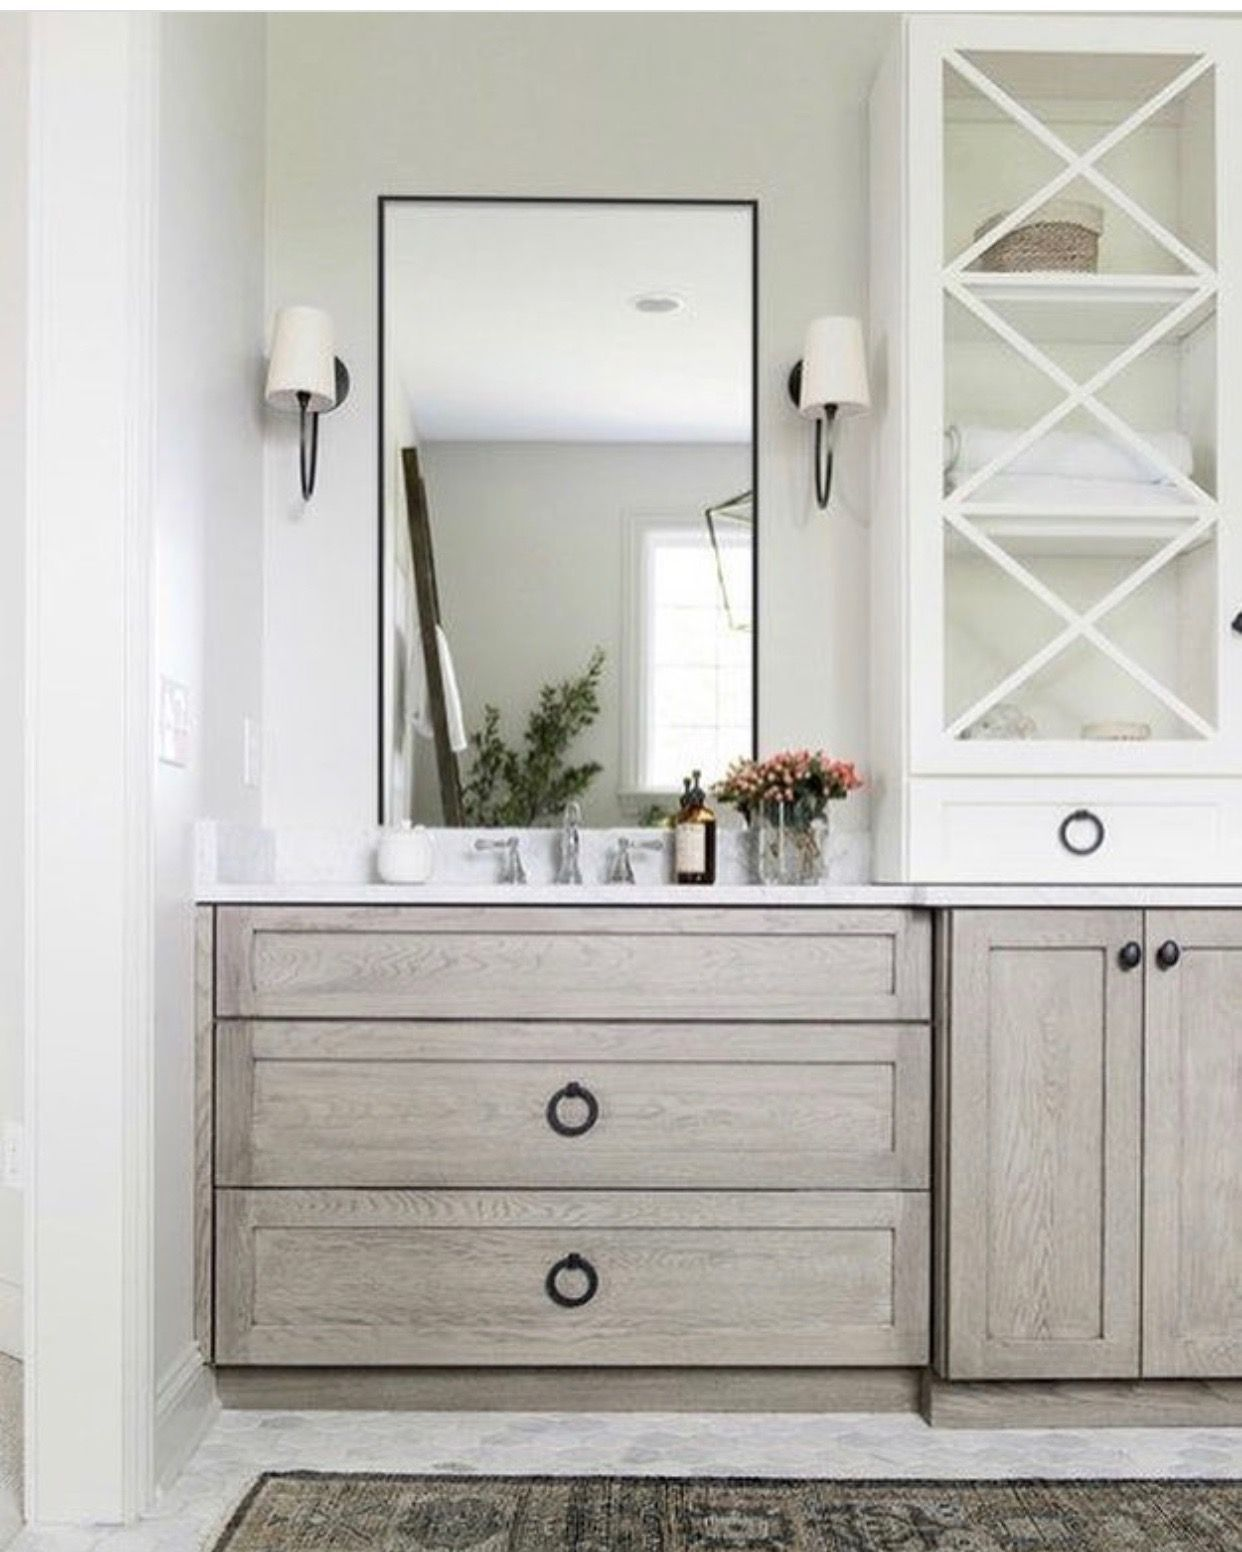 7 Bathroom Cabinet Ideas For Your Inspiration Bathroom Suites And Designs Bathroom Vanity Designs Modern Bathroom Vanity Bathroom Design